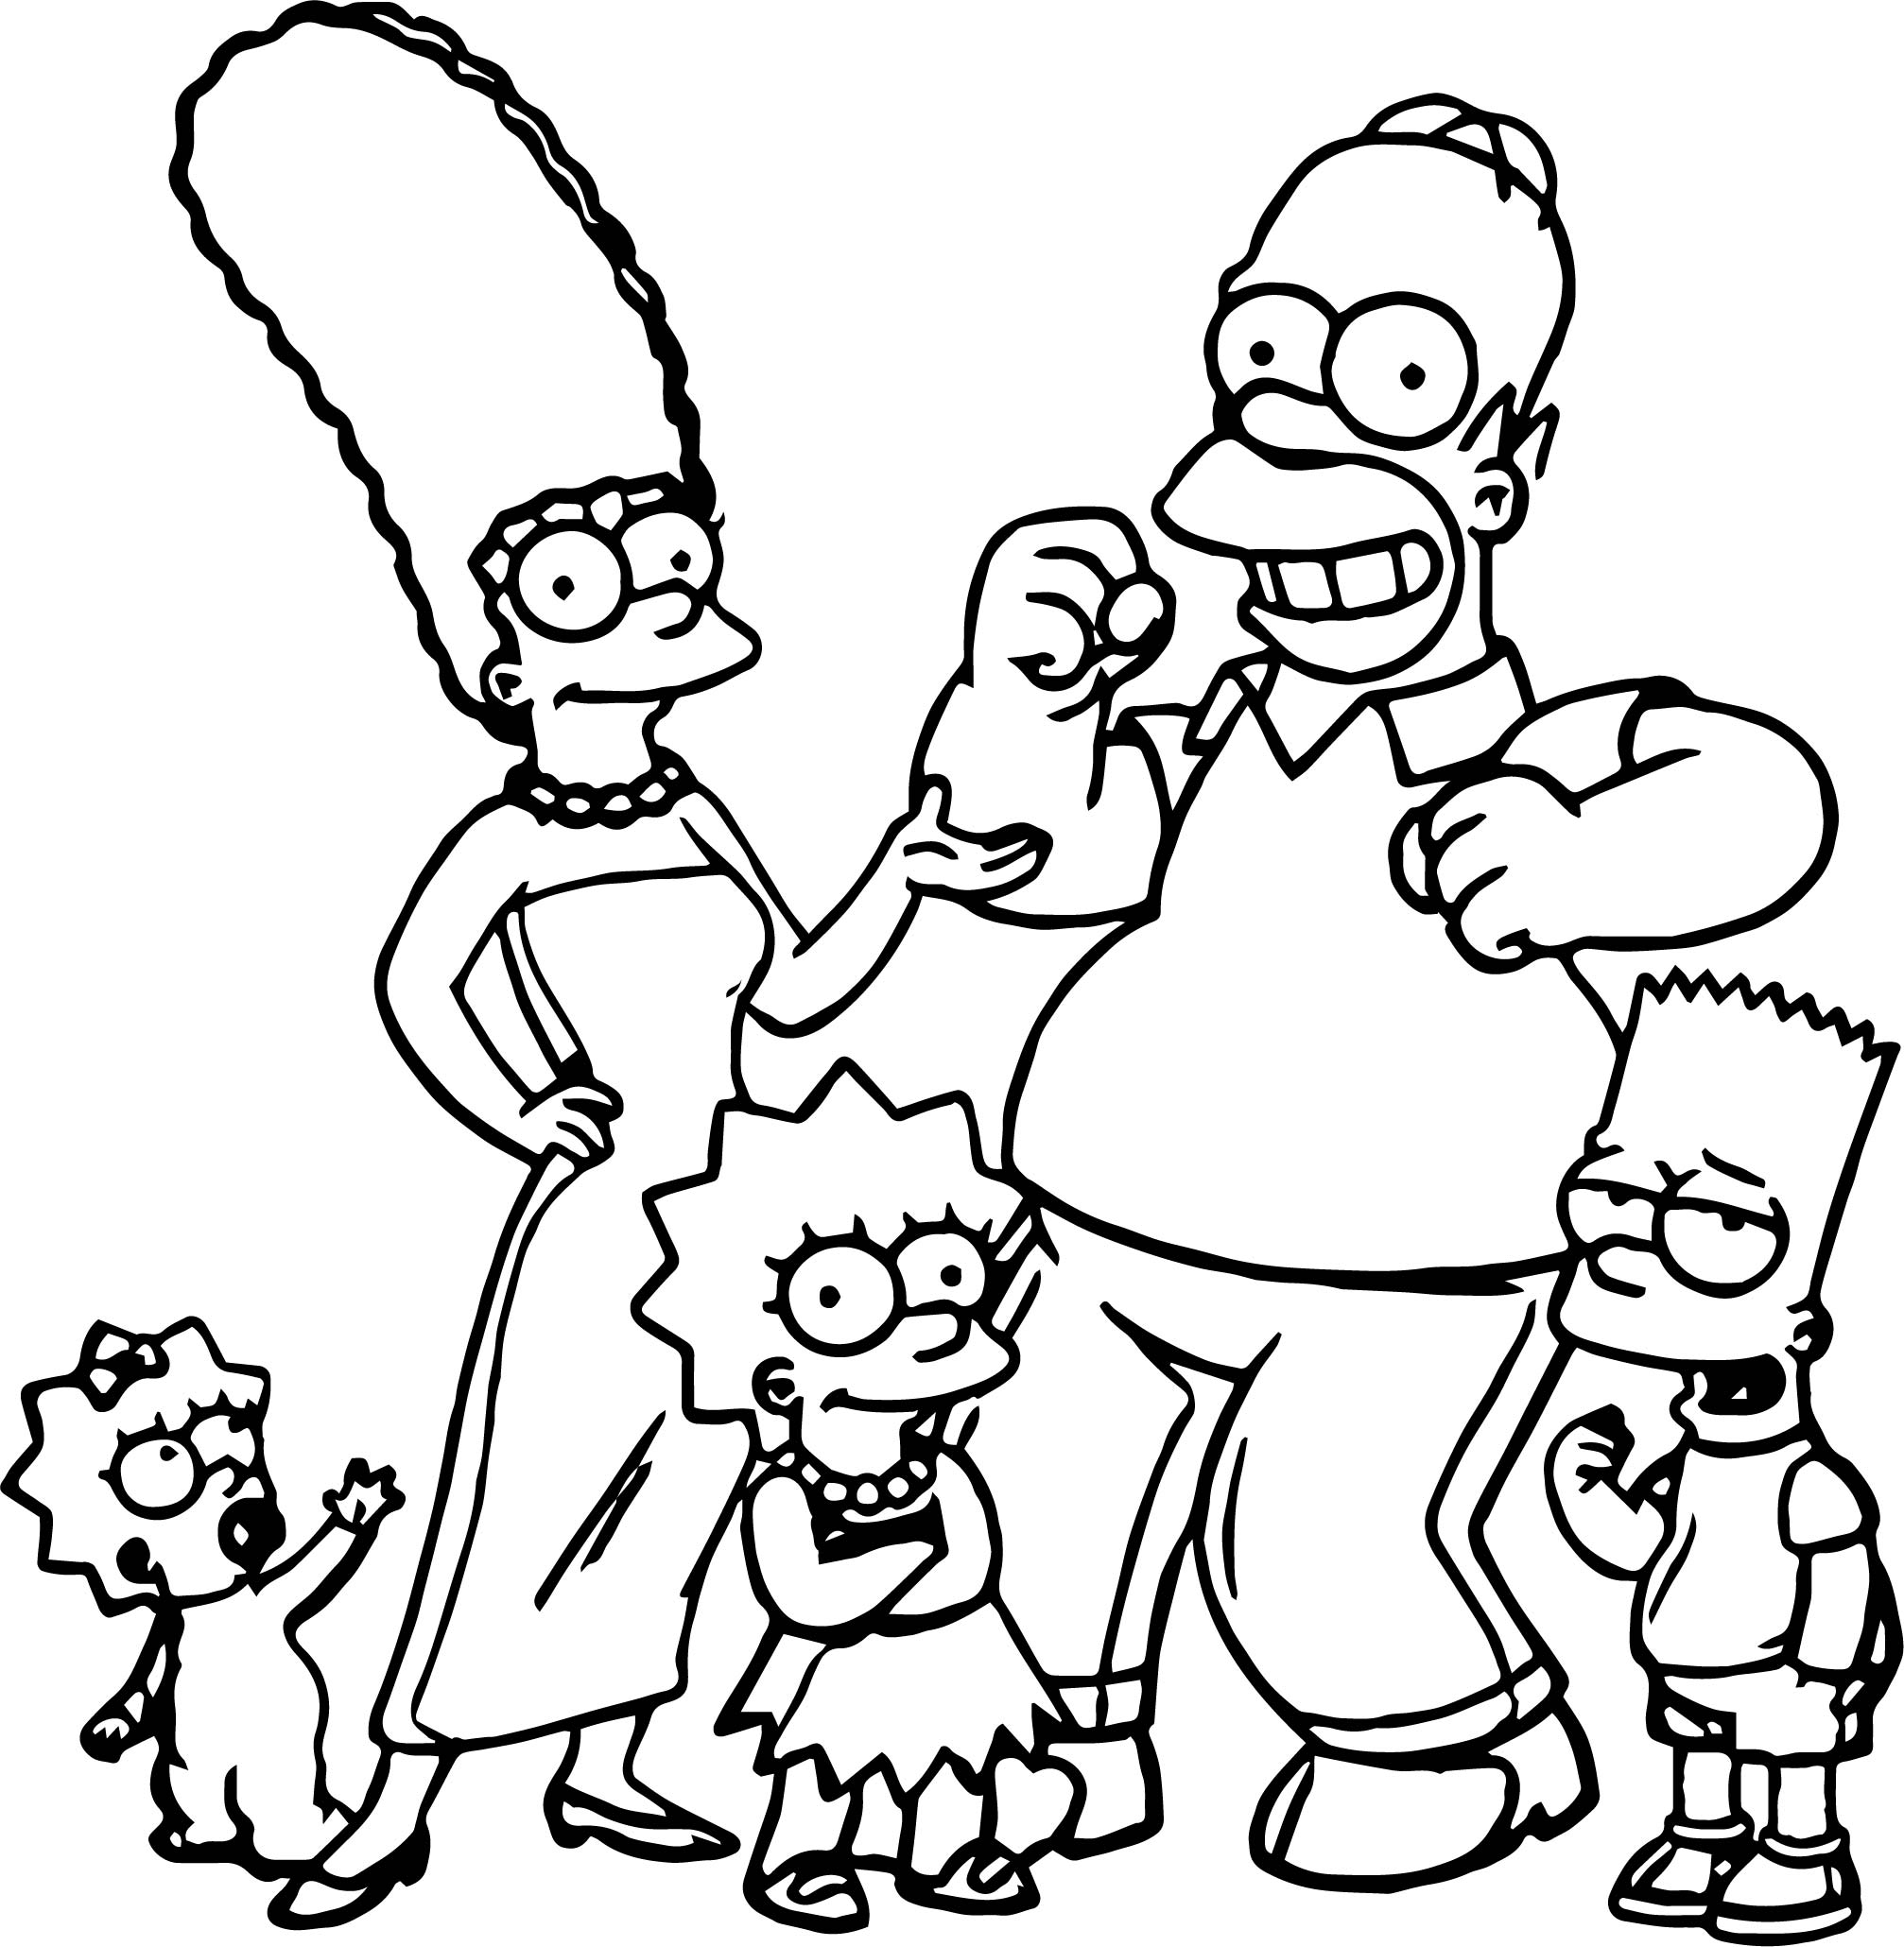 coloring simpsons the simpsons coloring pages 100 free images for printing simpsons coloring